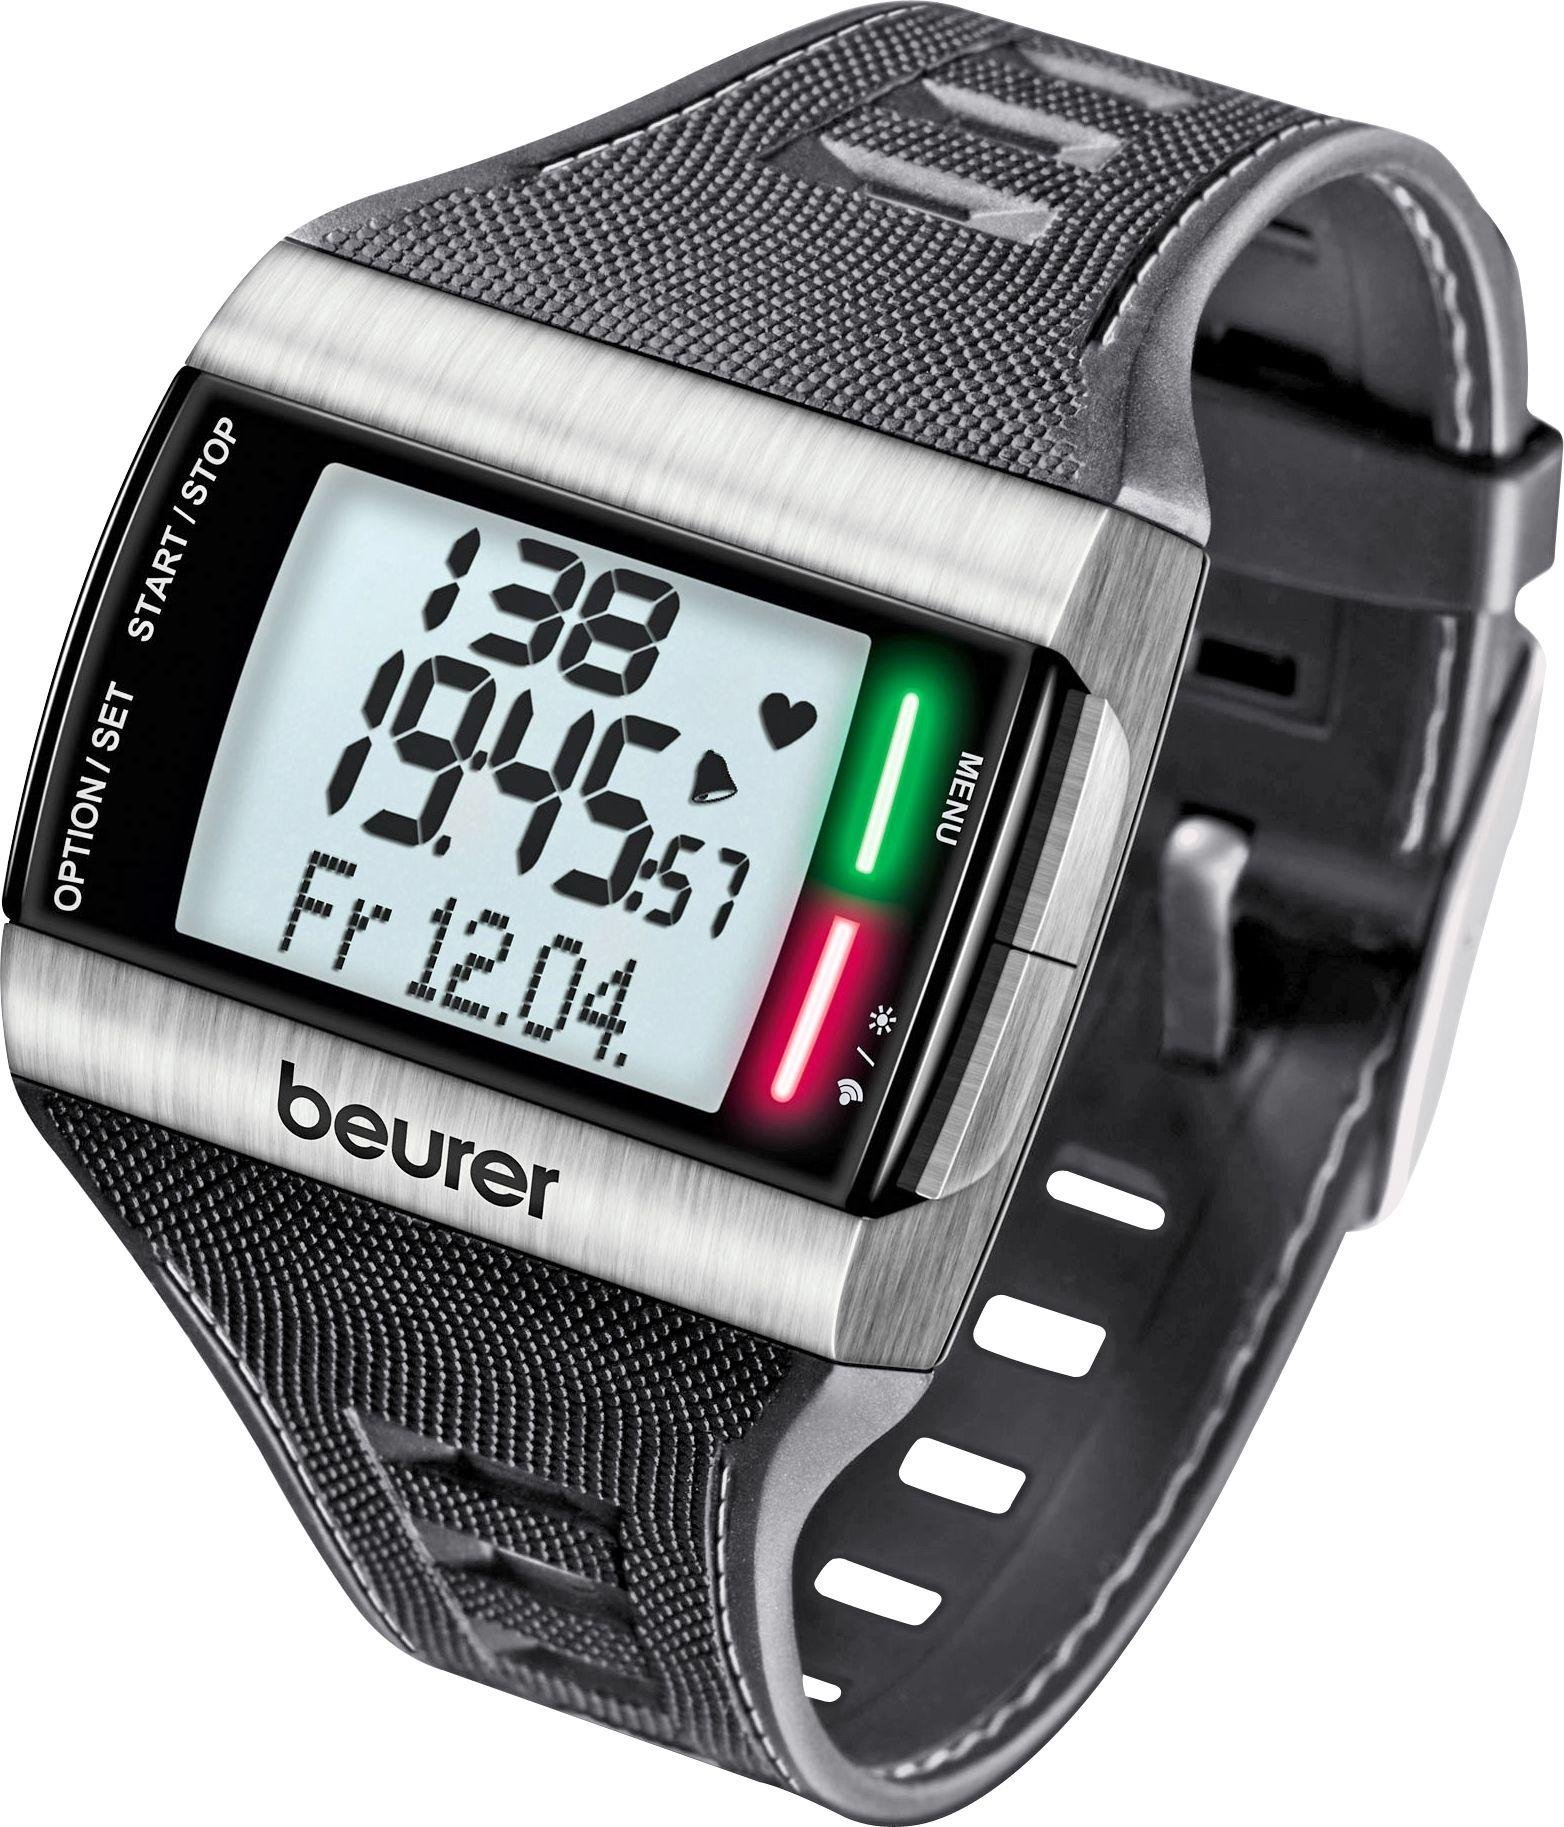 Beurer - PM62 Heart Rate Monitor Watch